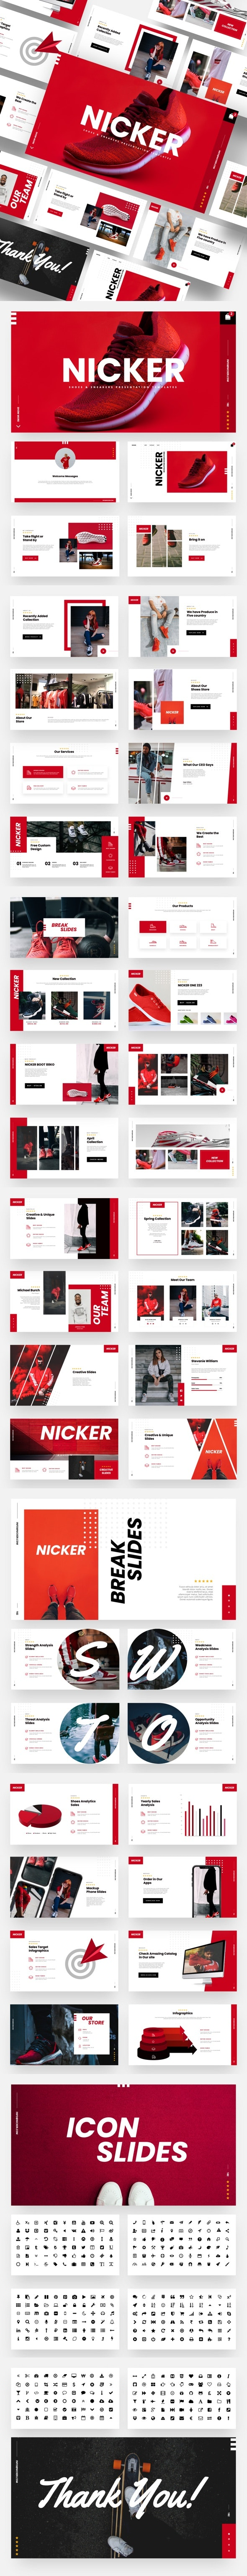 Nicker - Shoes & Sneakers Keynote Template - Business Keynote Templates